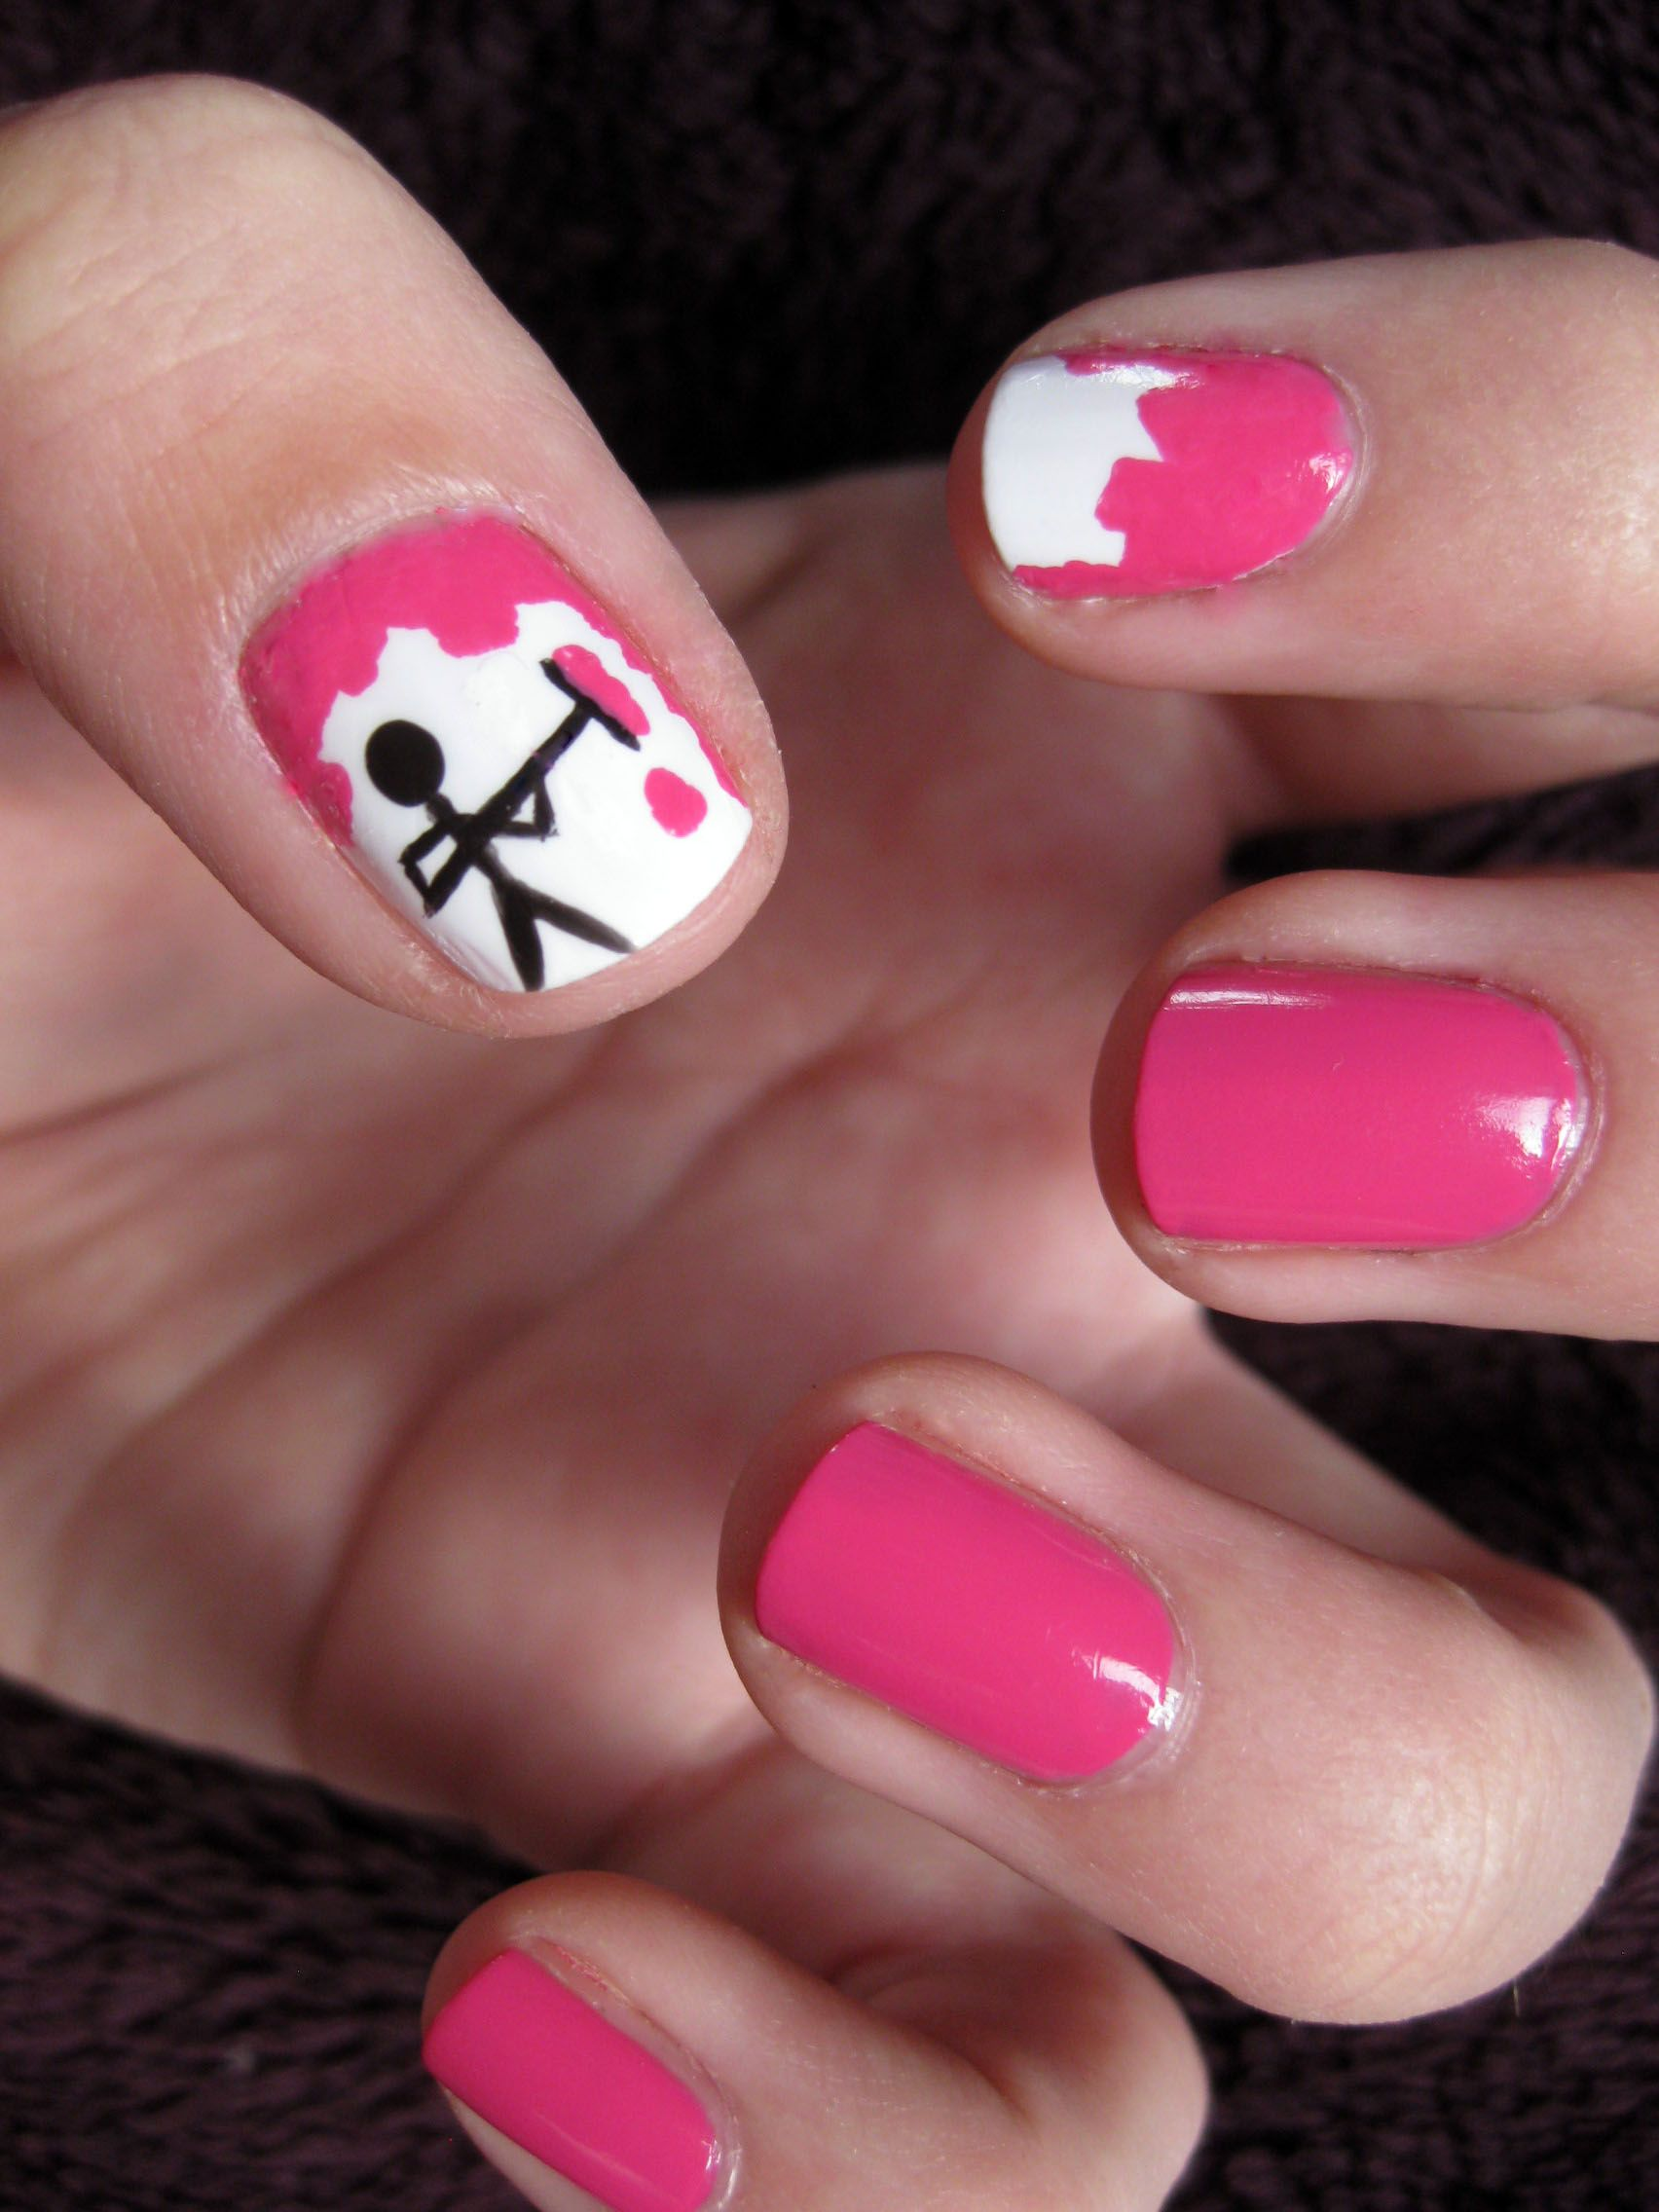 Stick Man Done From A Design I Found On Pinterest Izzit Cool Nail Designs Nail Tutorials Fun Nails